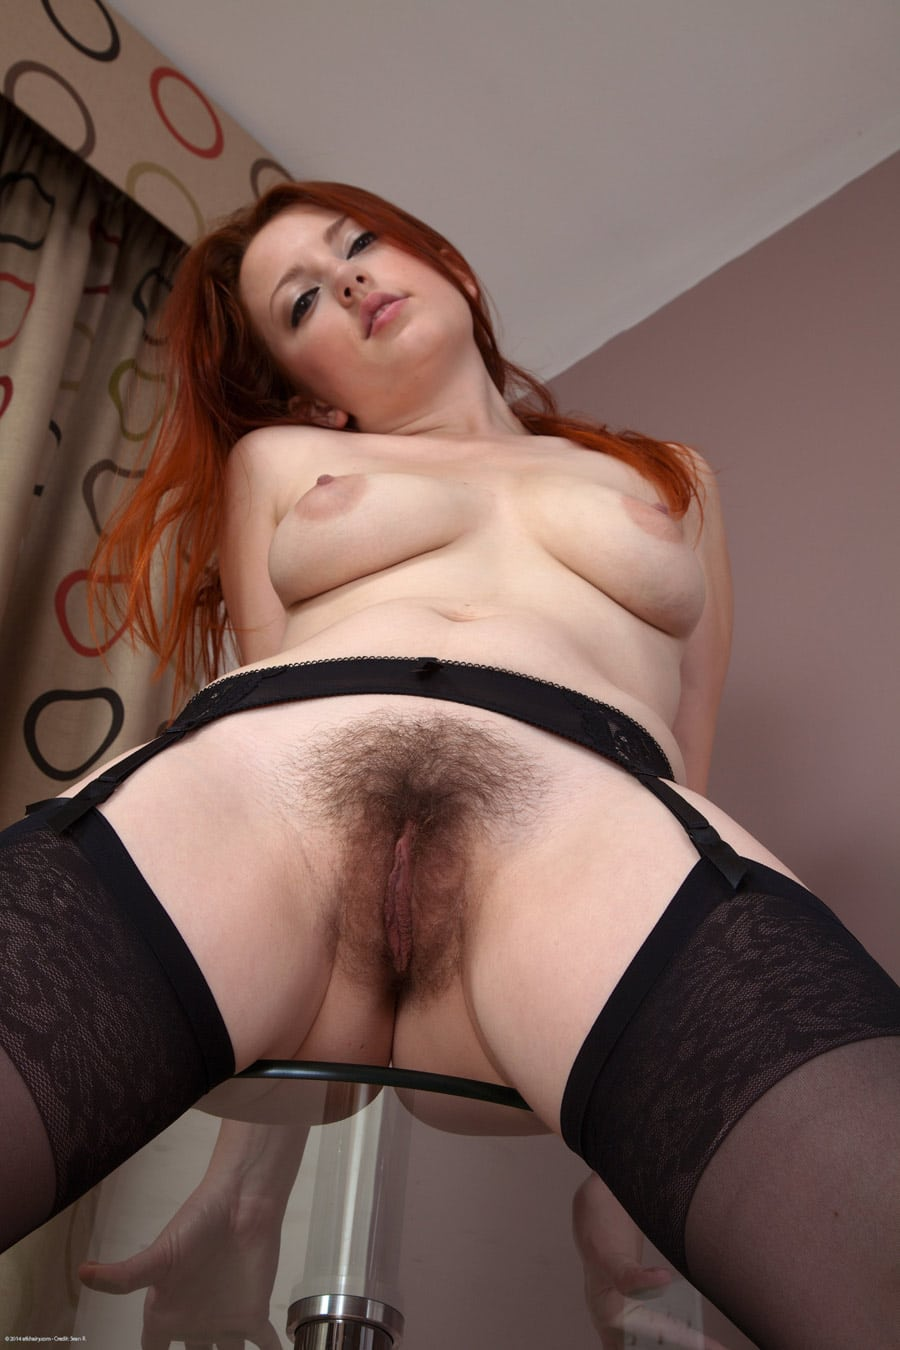 rouquine-chatte-douce-soyeuse-5